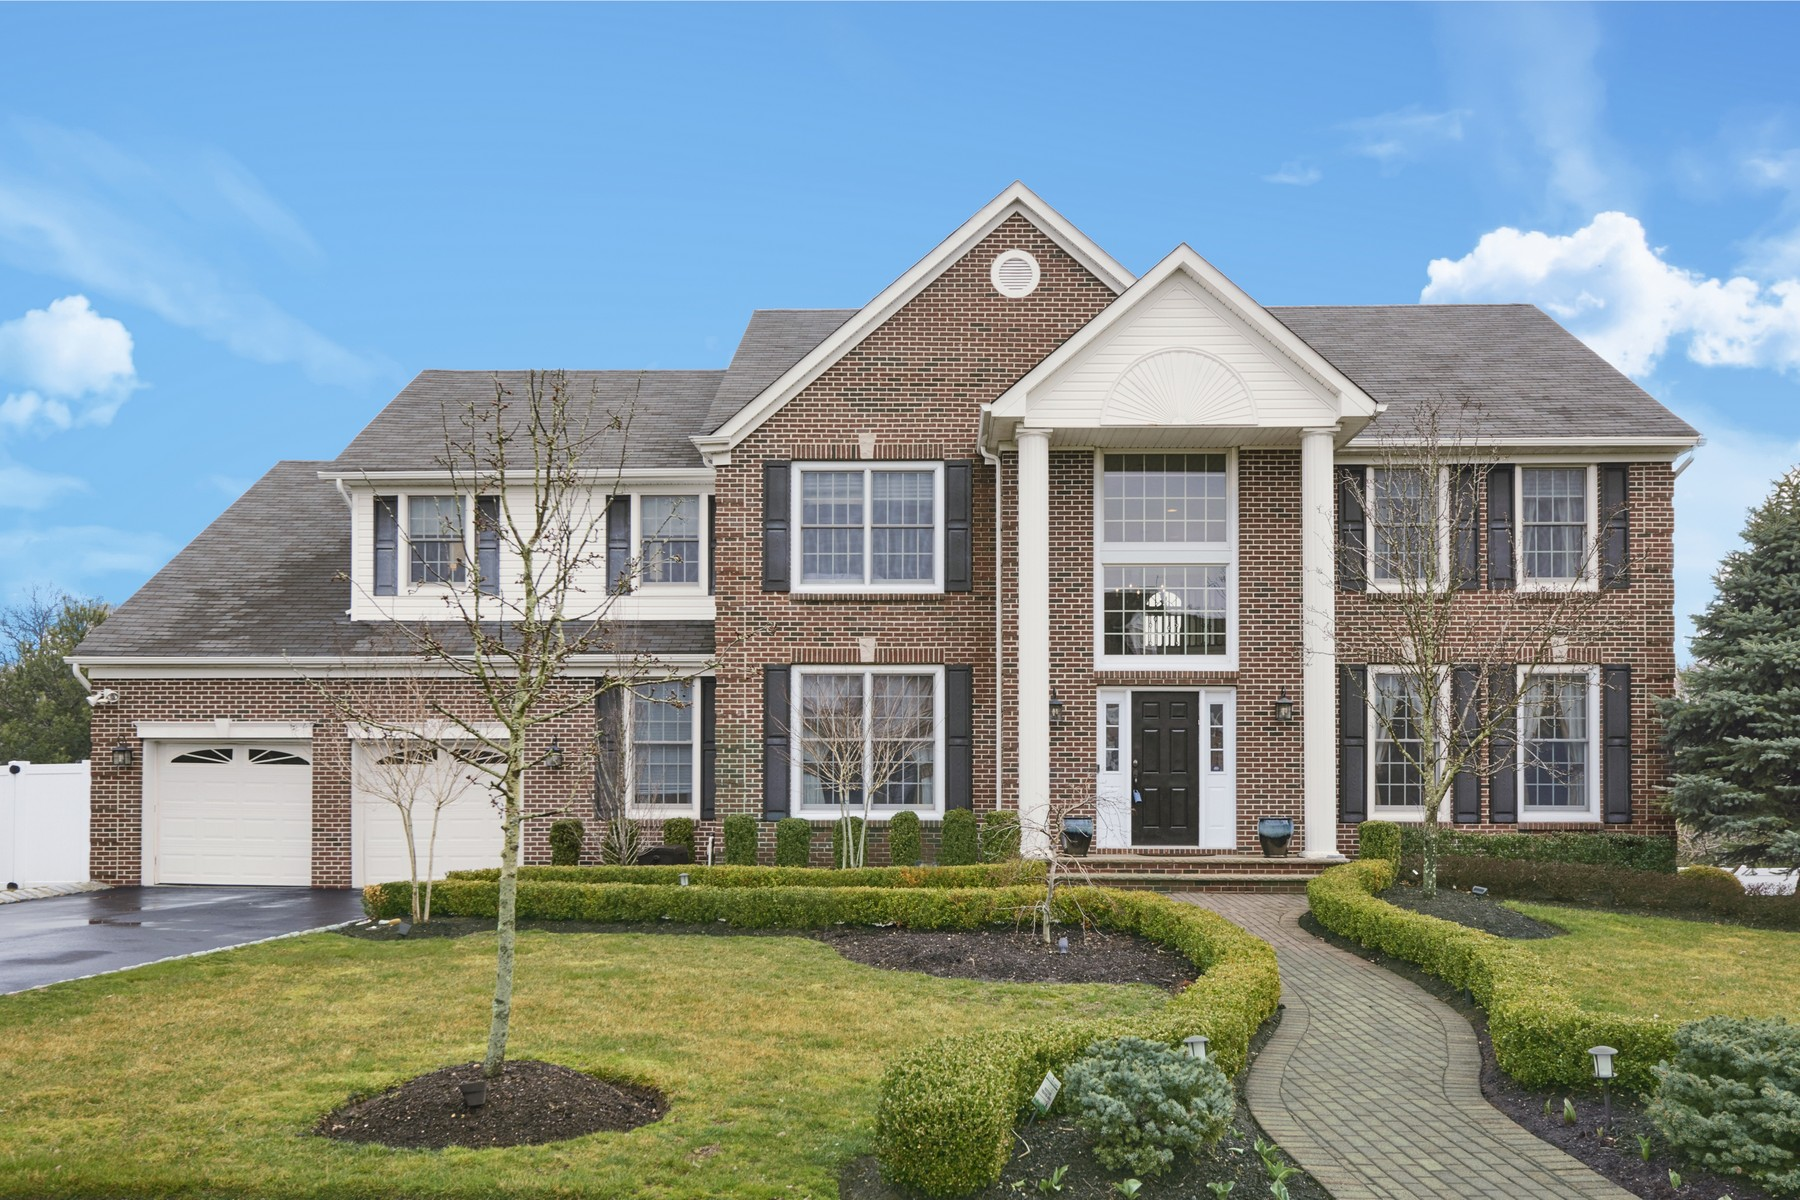 Single Family Home for Sale at Upscale Design 8 The Fellsway Ocean, New Jersey 07712 United States